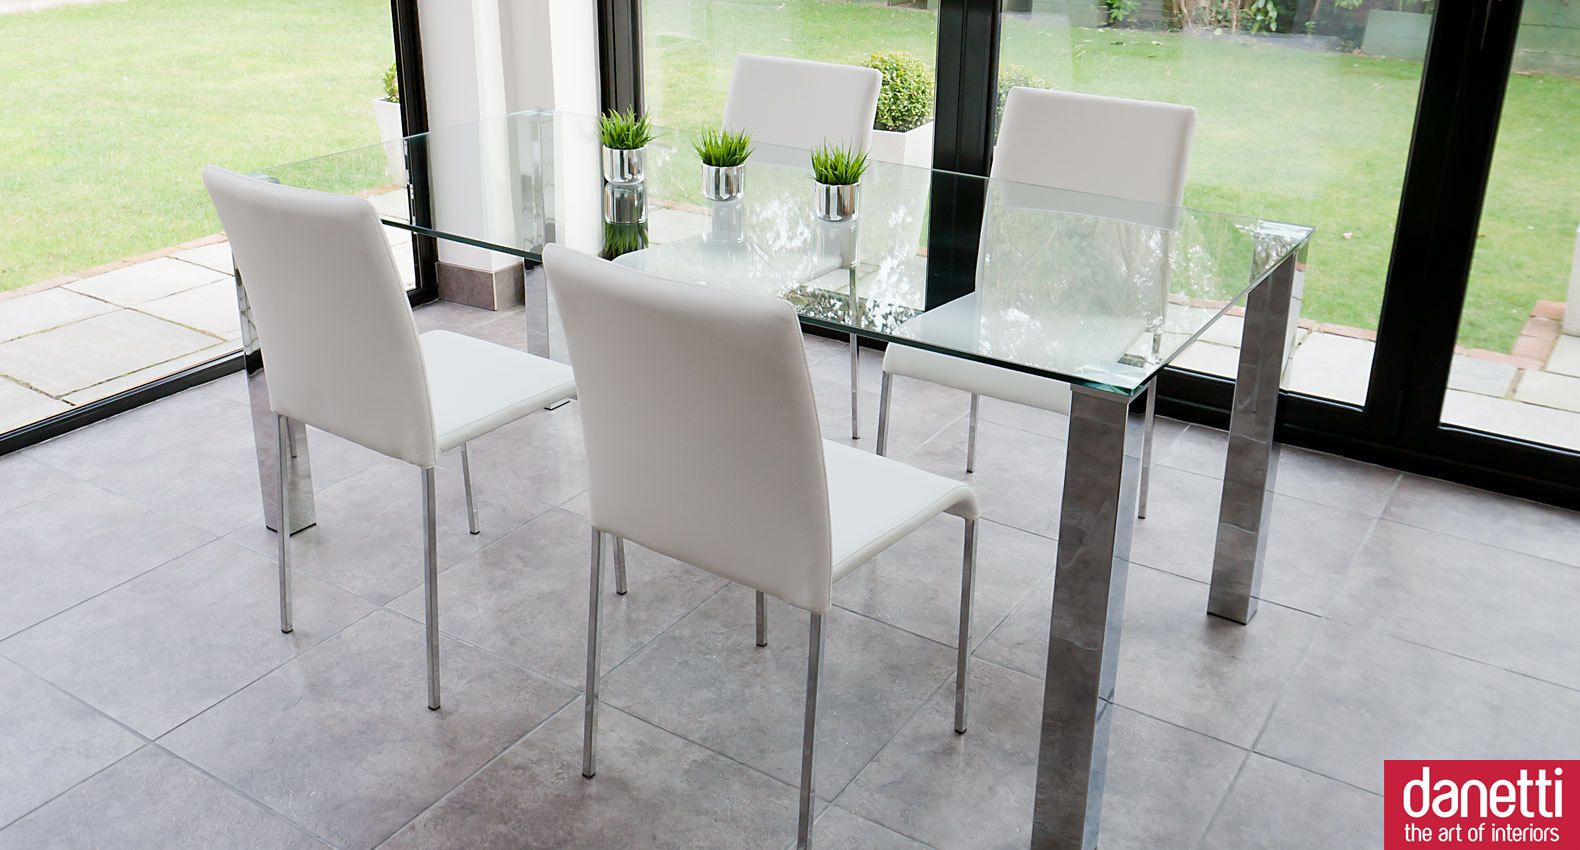 The Tiva Chrome And Glass Dining Table Combines Style And